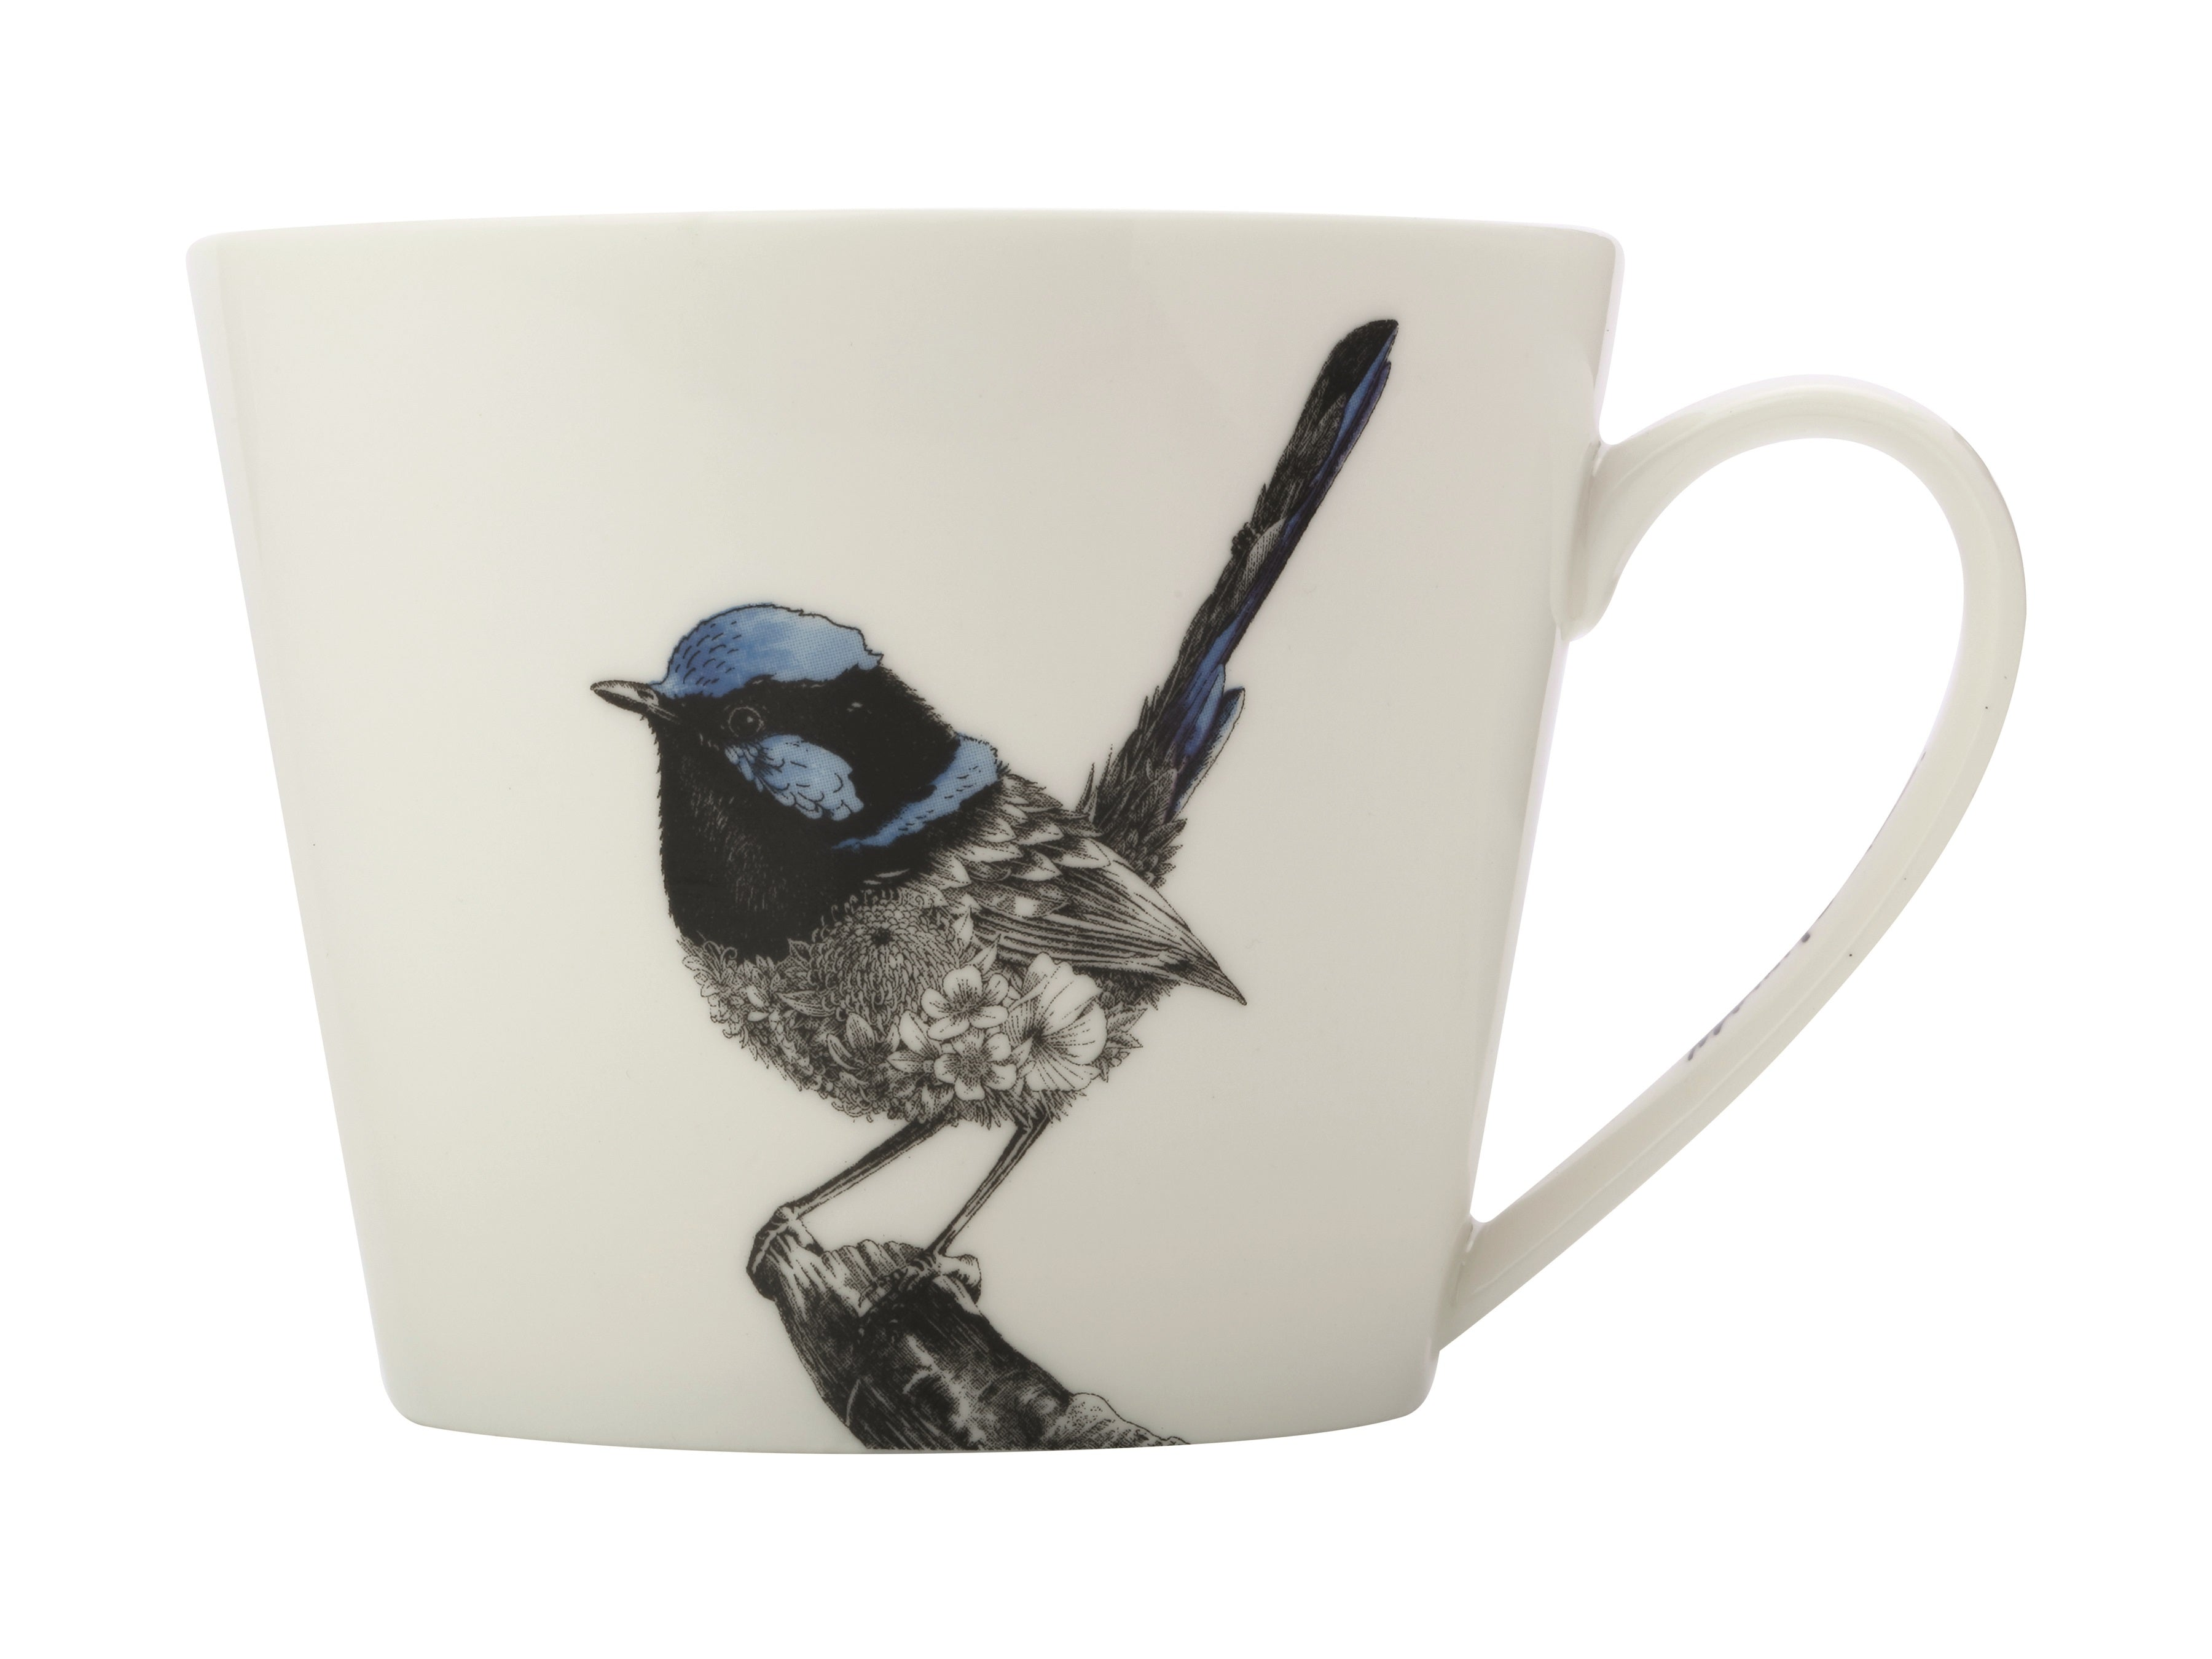 MW Marini Ferlazzo Birds Fairy-wren Mug, Plate and Tea Towel Set